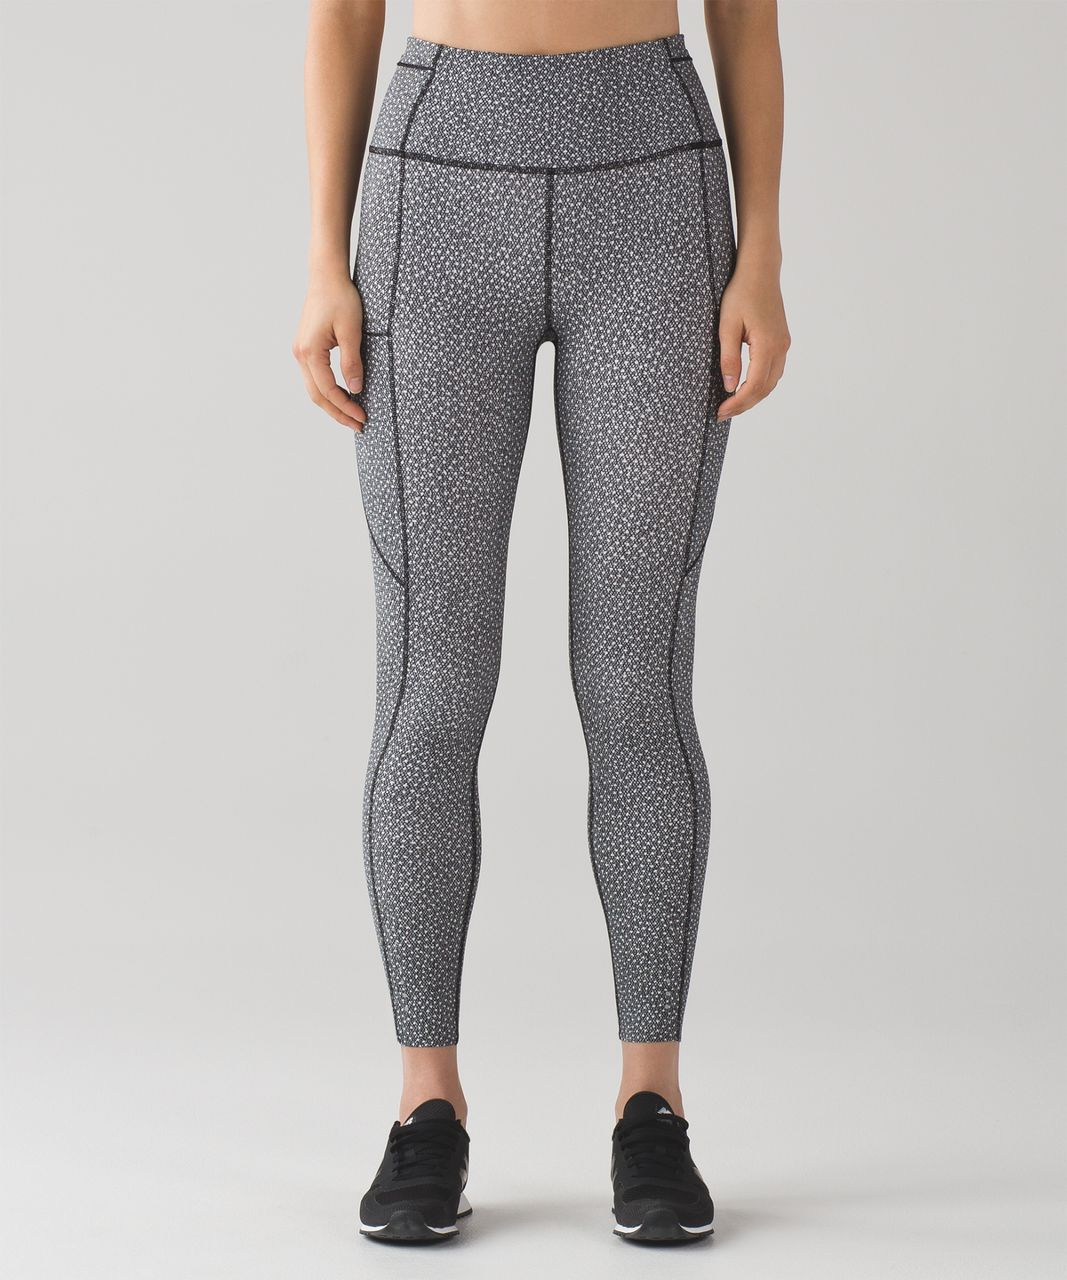 Lululemon Fast And Free 7/8 Tight - Frozen Fizz White Black